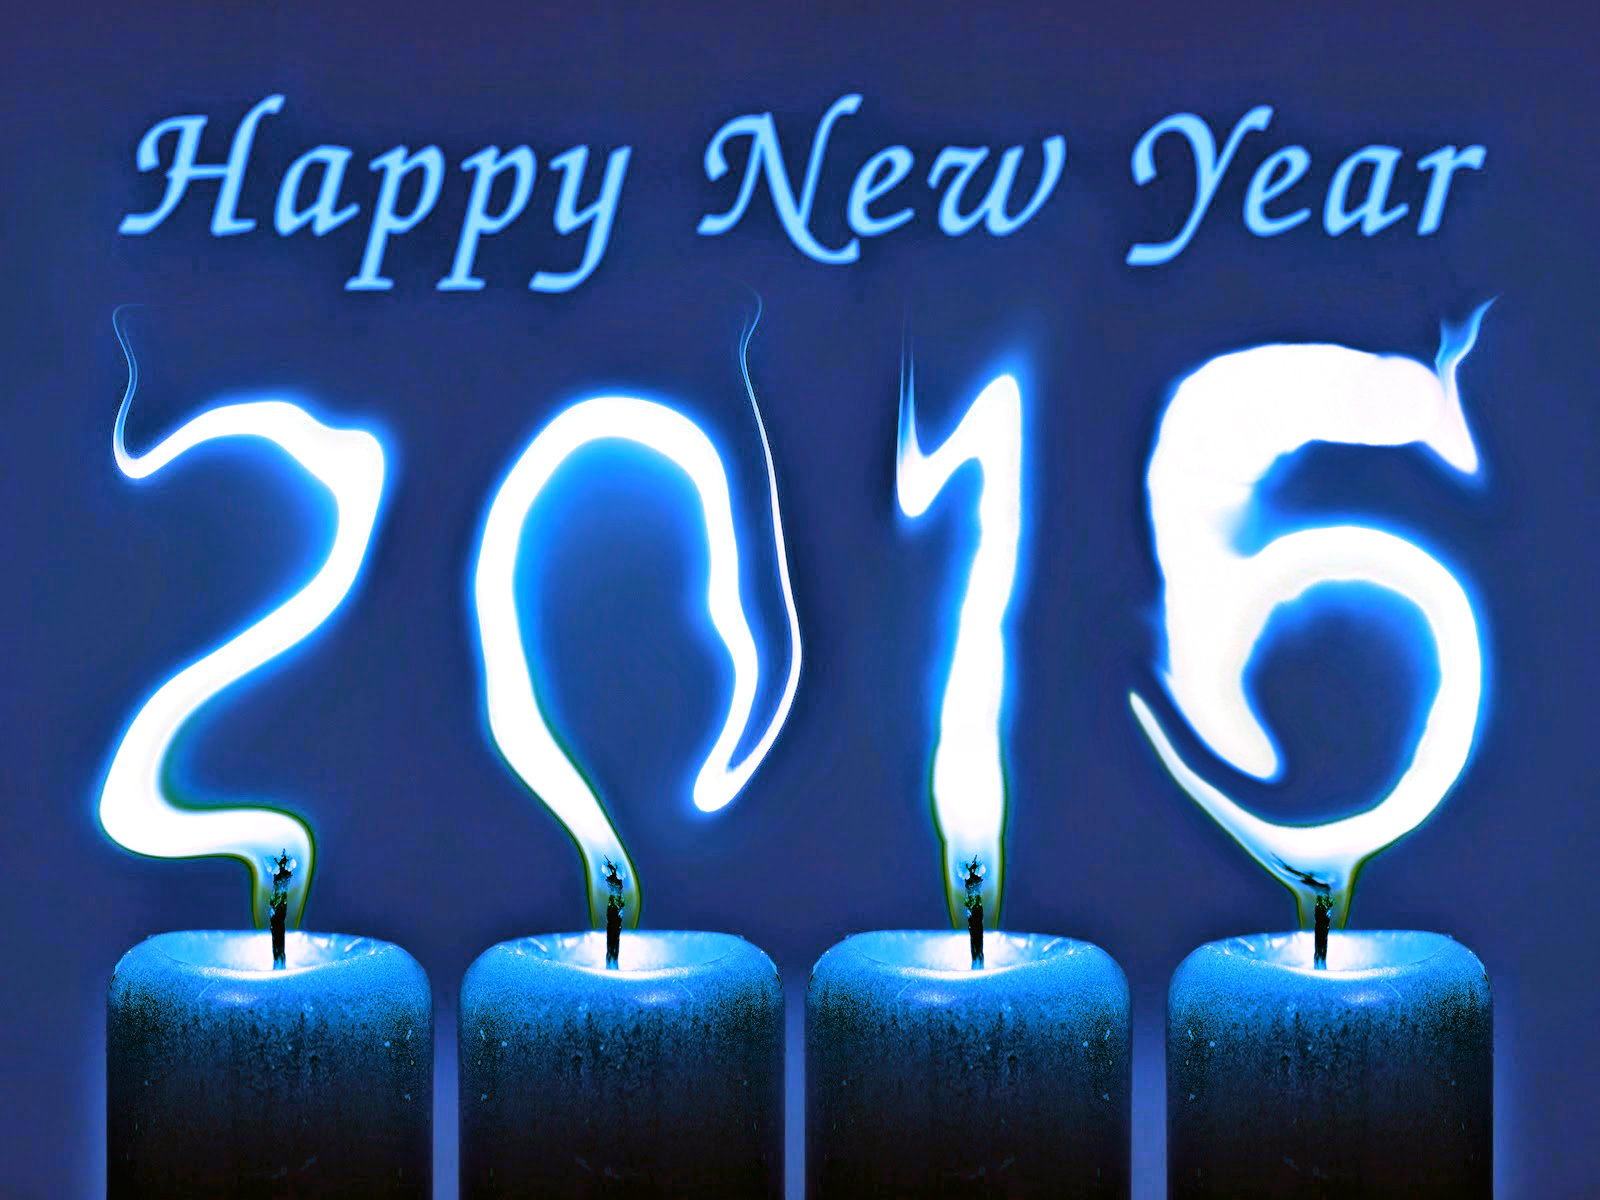 Best Happy New Year 015 Images wallpaper 1600x1200